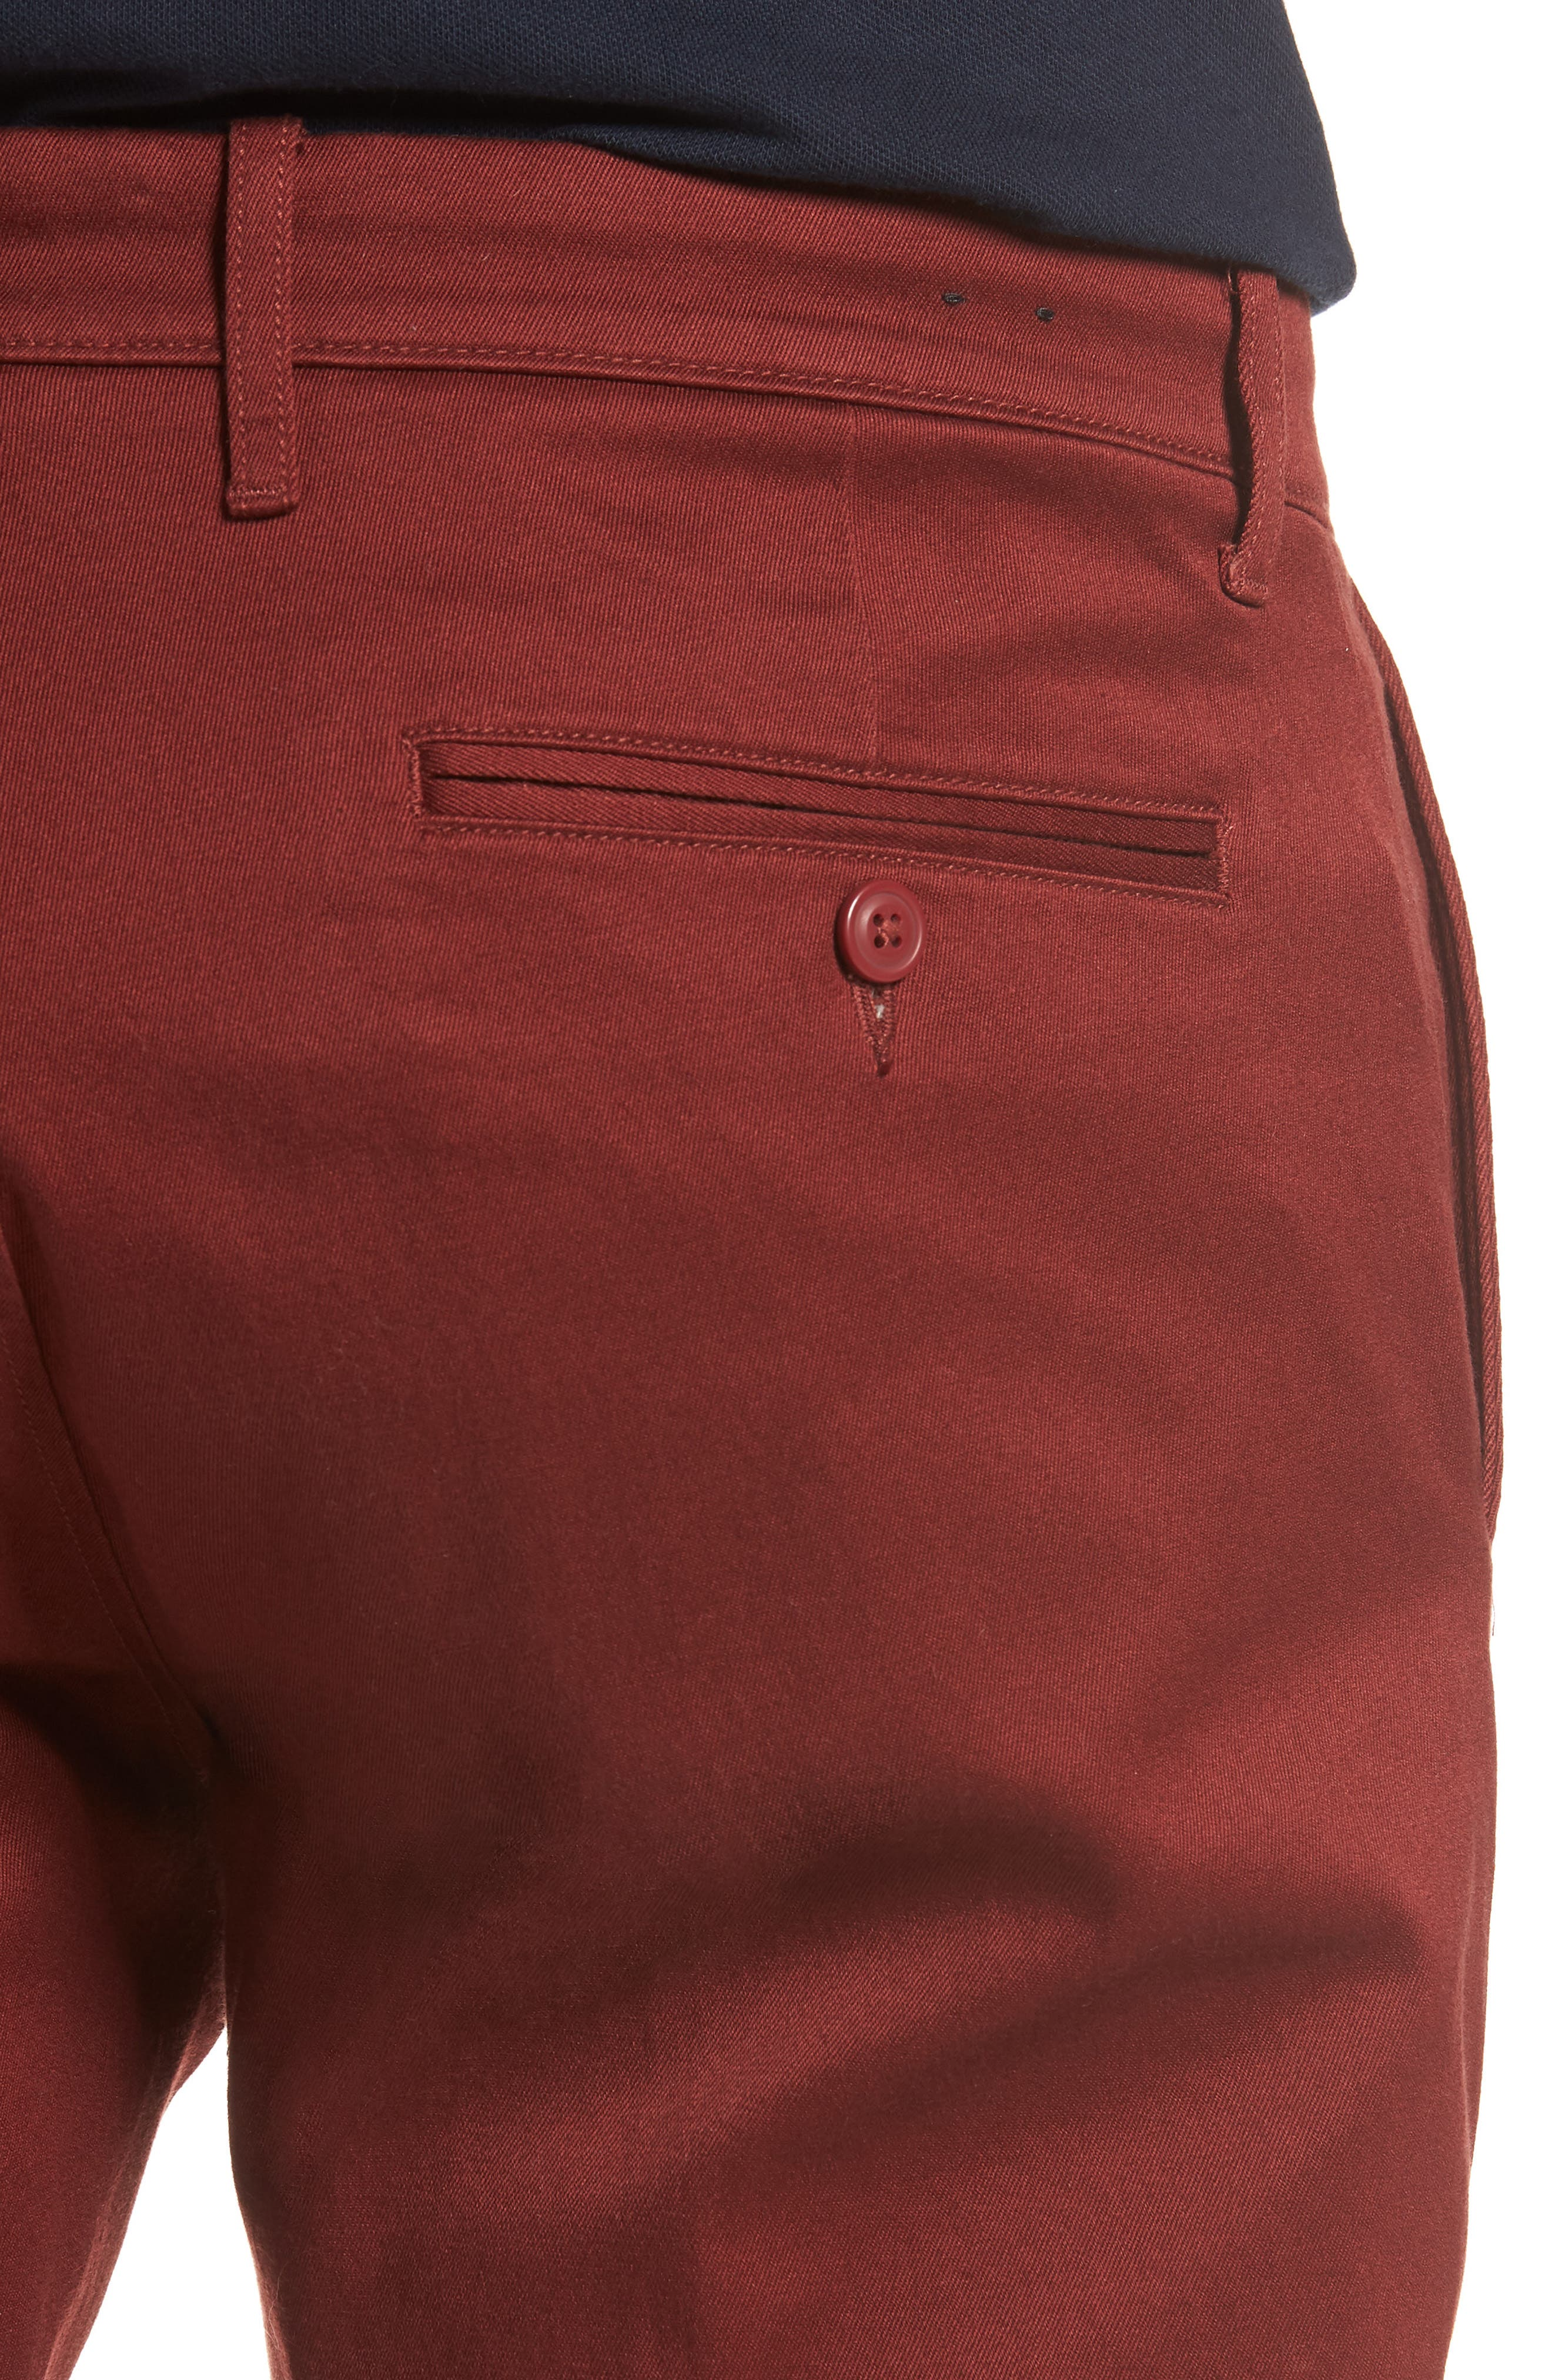 484 Slim Fit Stretch Chino Pants,                             Alternate thumbnail 37, color,